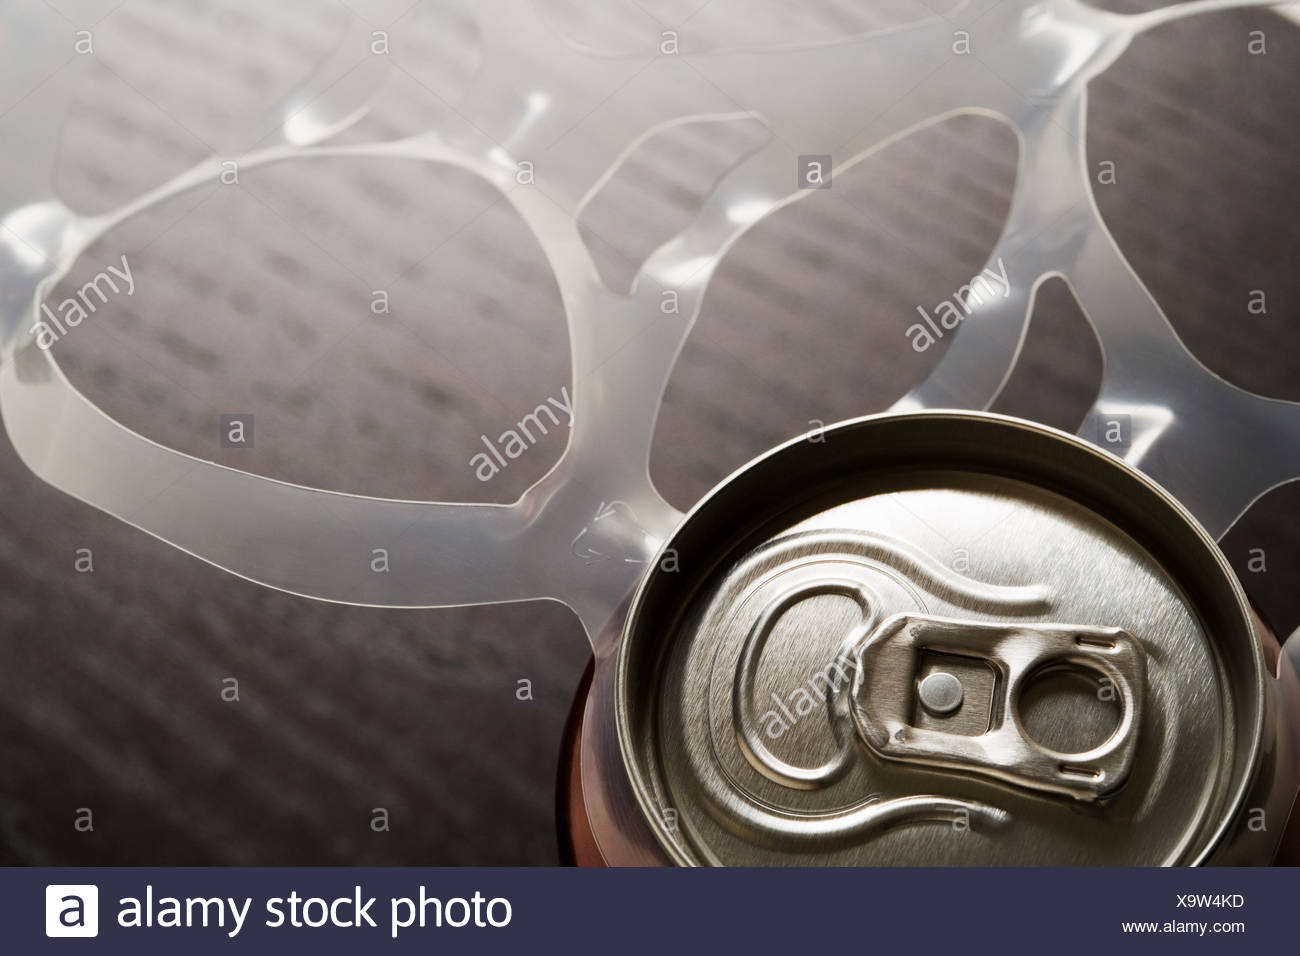 Drink can and plastic ring - Stock Image